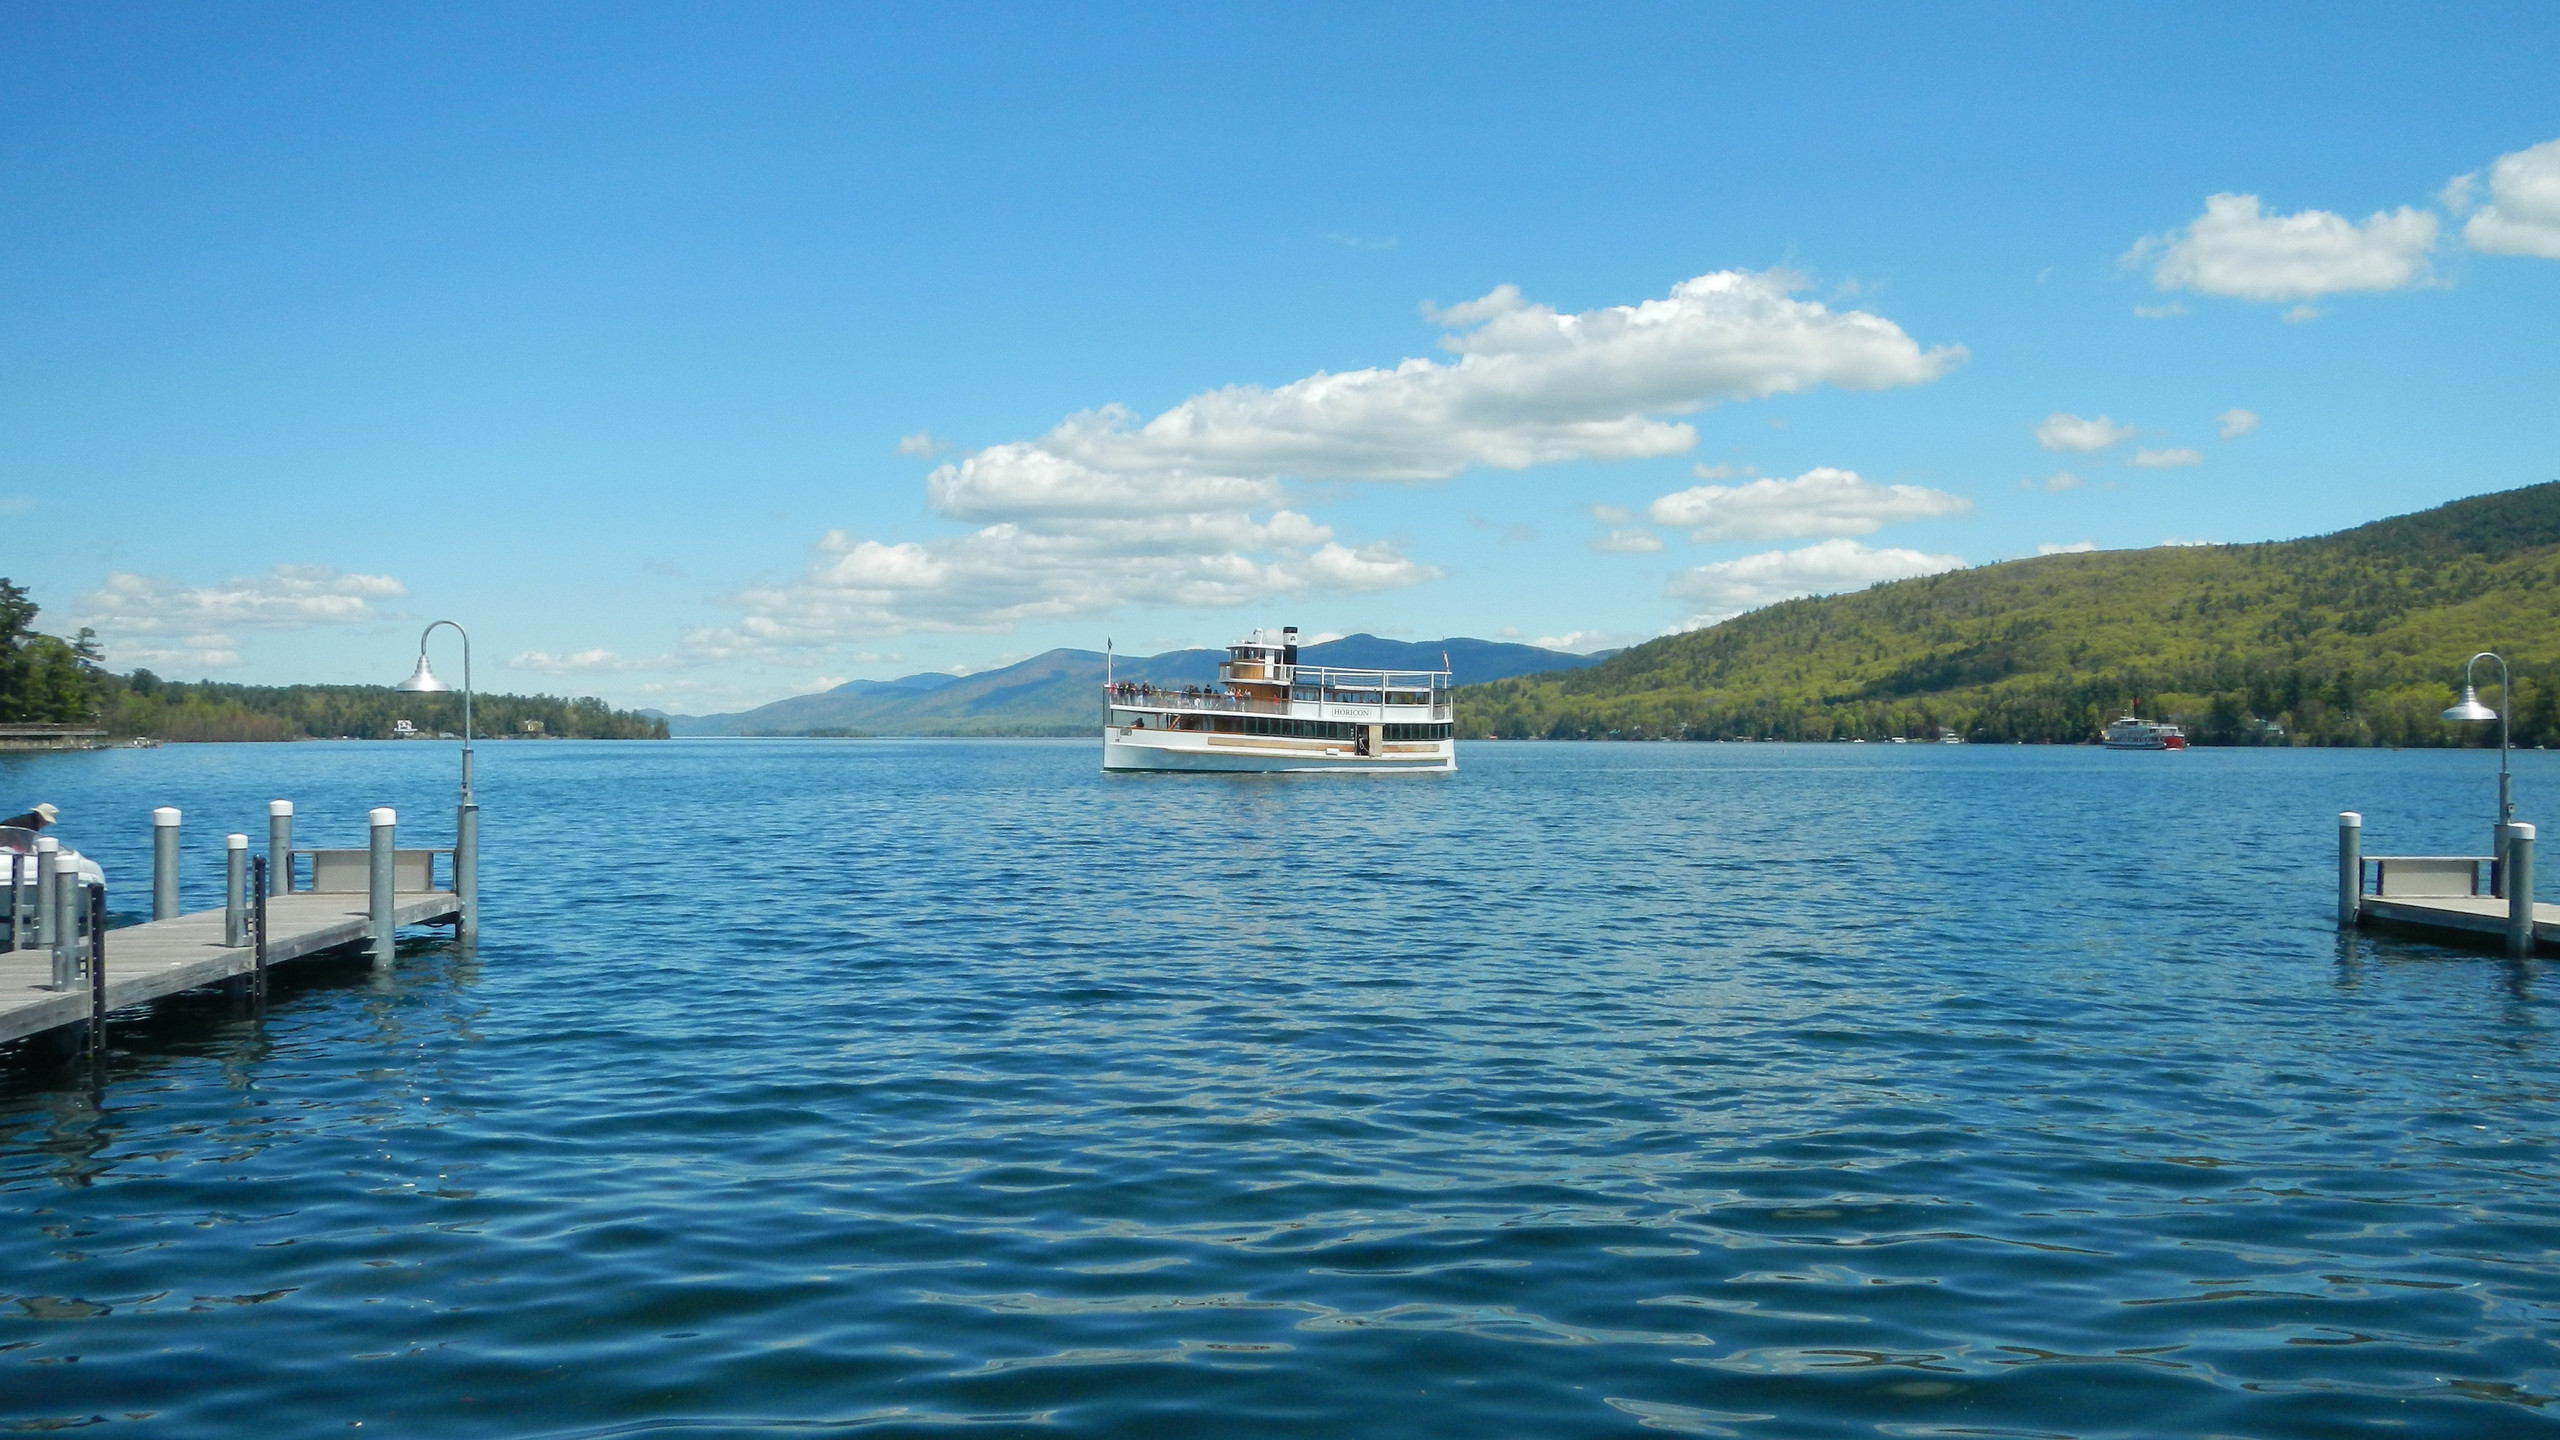 The Horican boat cruises on Lake George